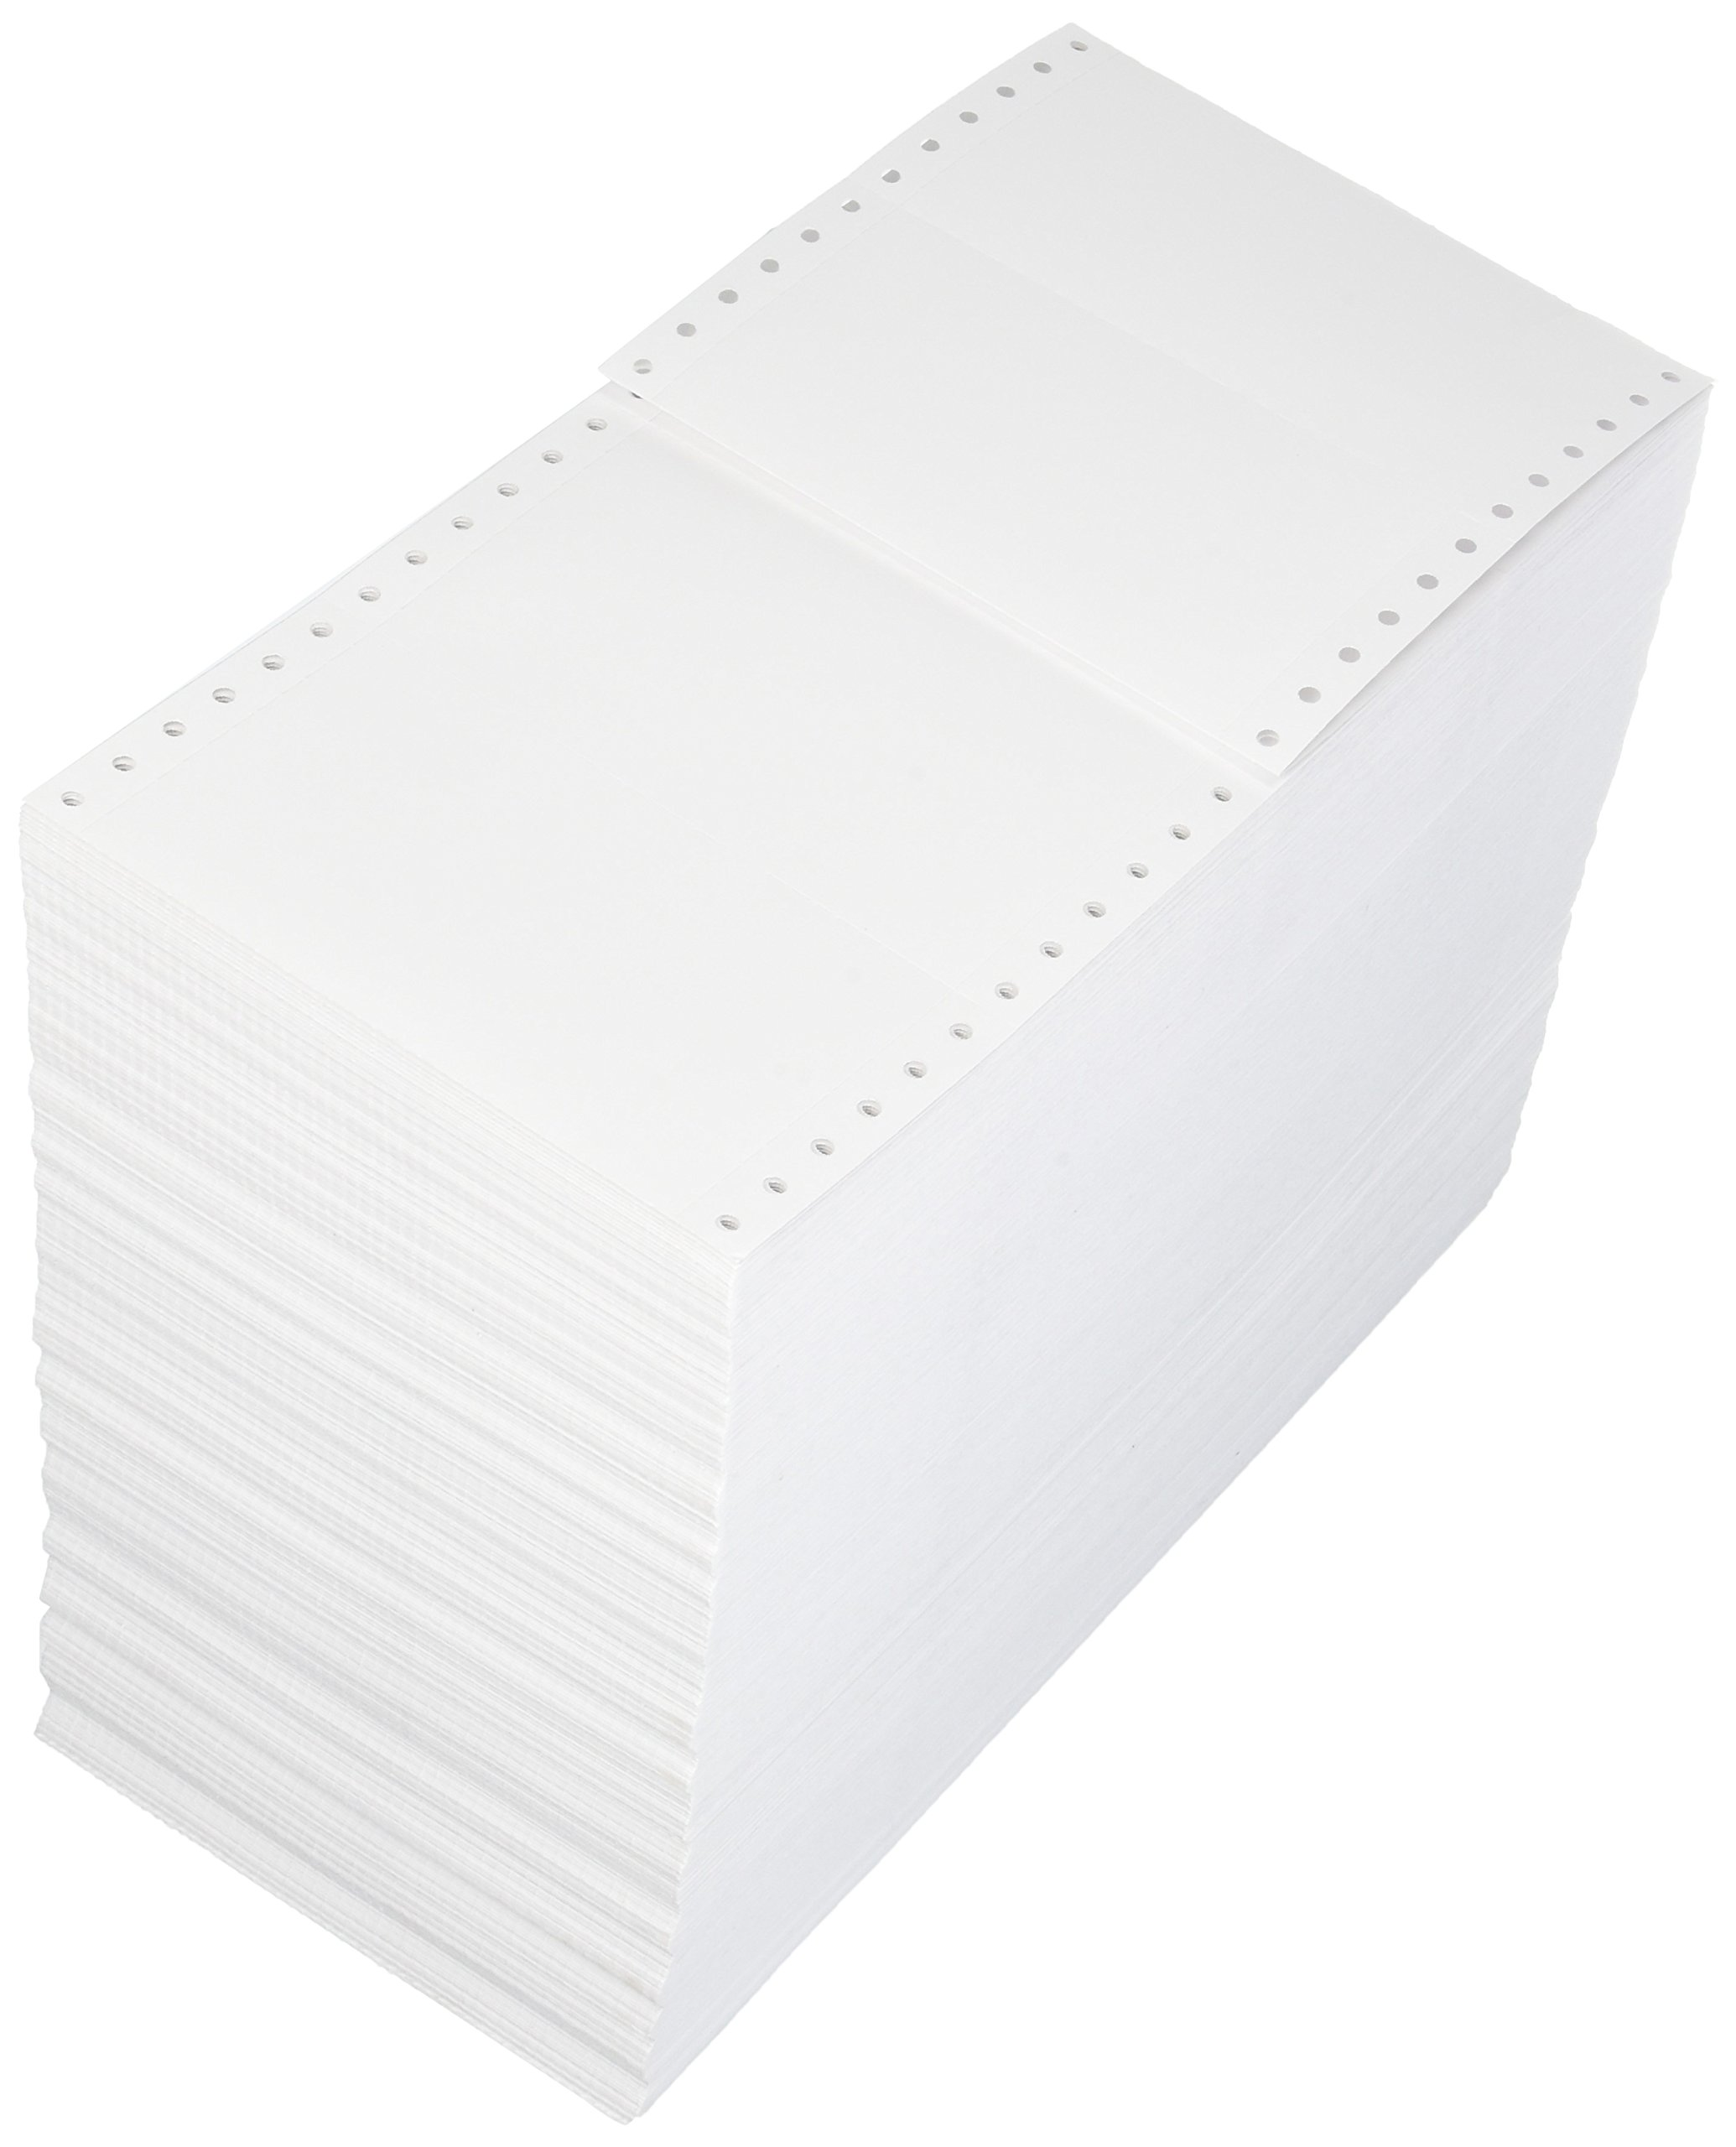 Compulabel Pinfeed Cards Fanfold 100 Pound, 92 Brightness, White (210150)